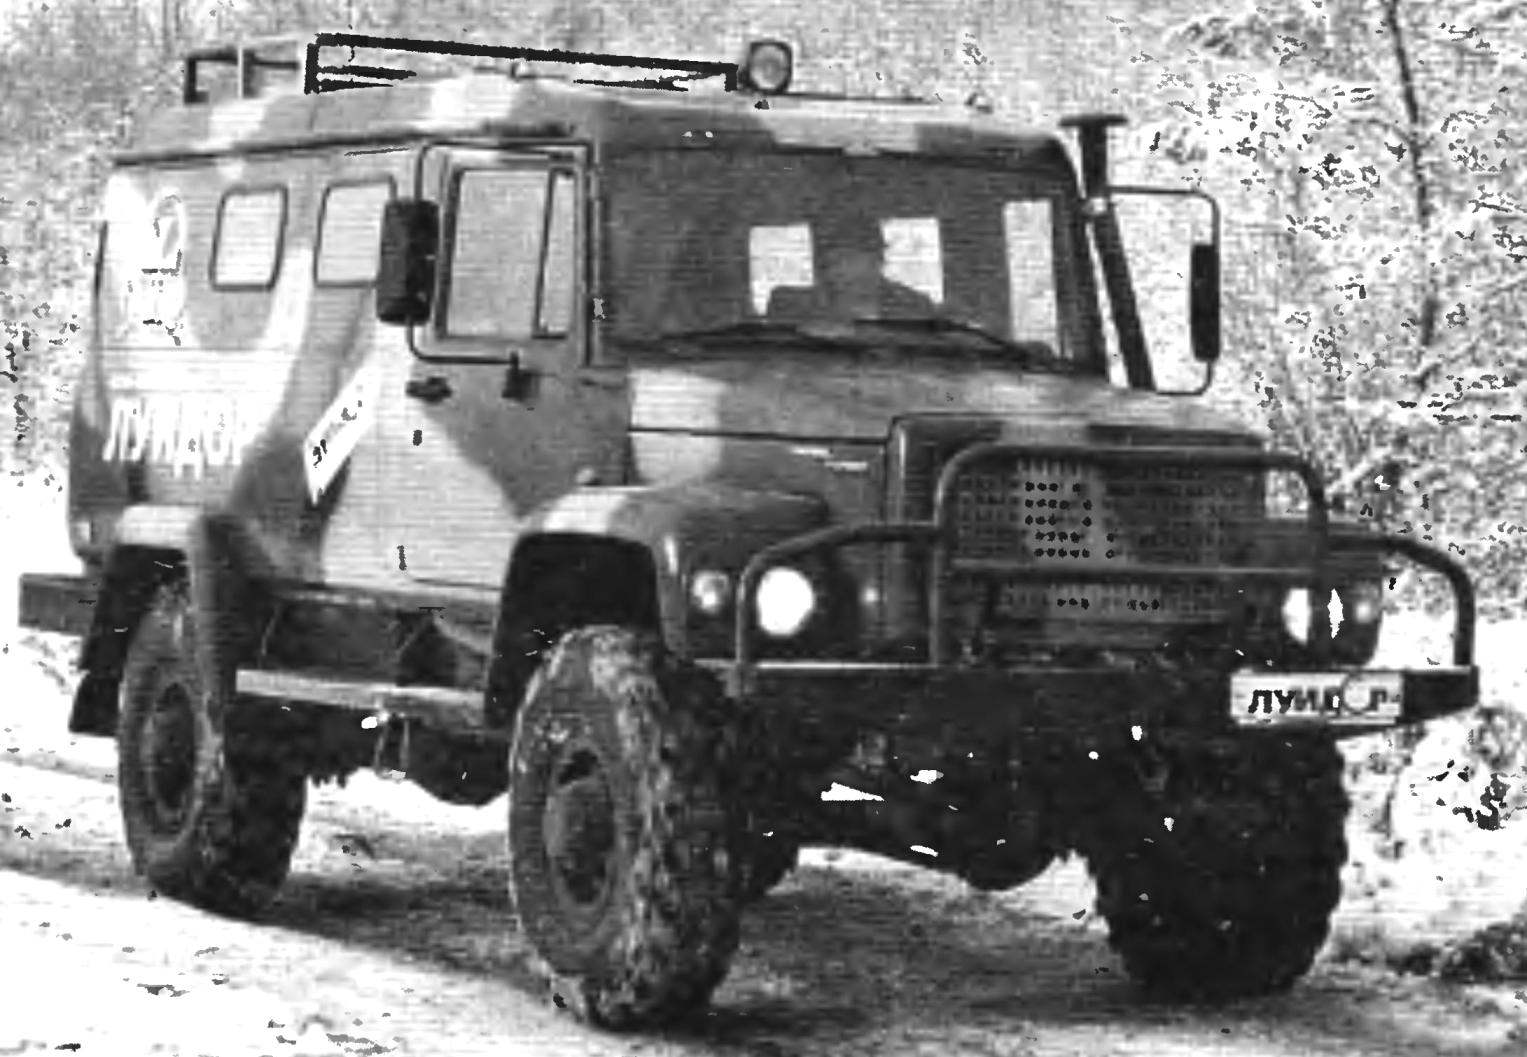 Utility diesel 11-seater all-wheel drive all-terrain vehicle GAZ-3901